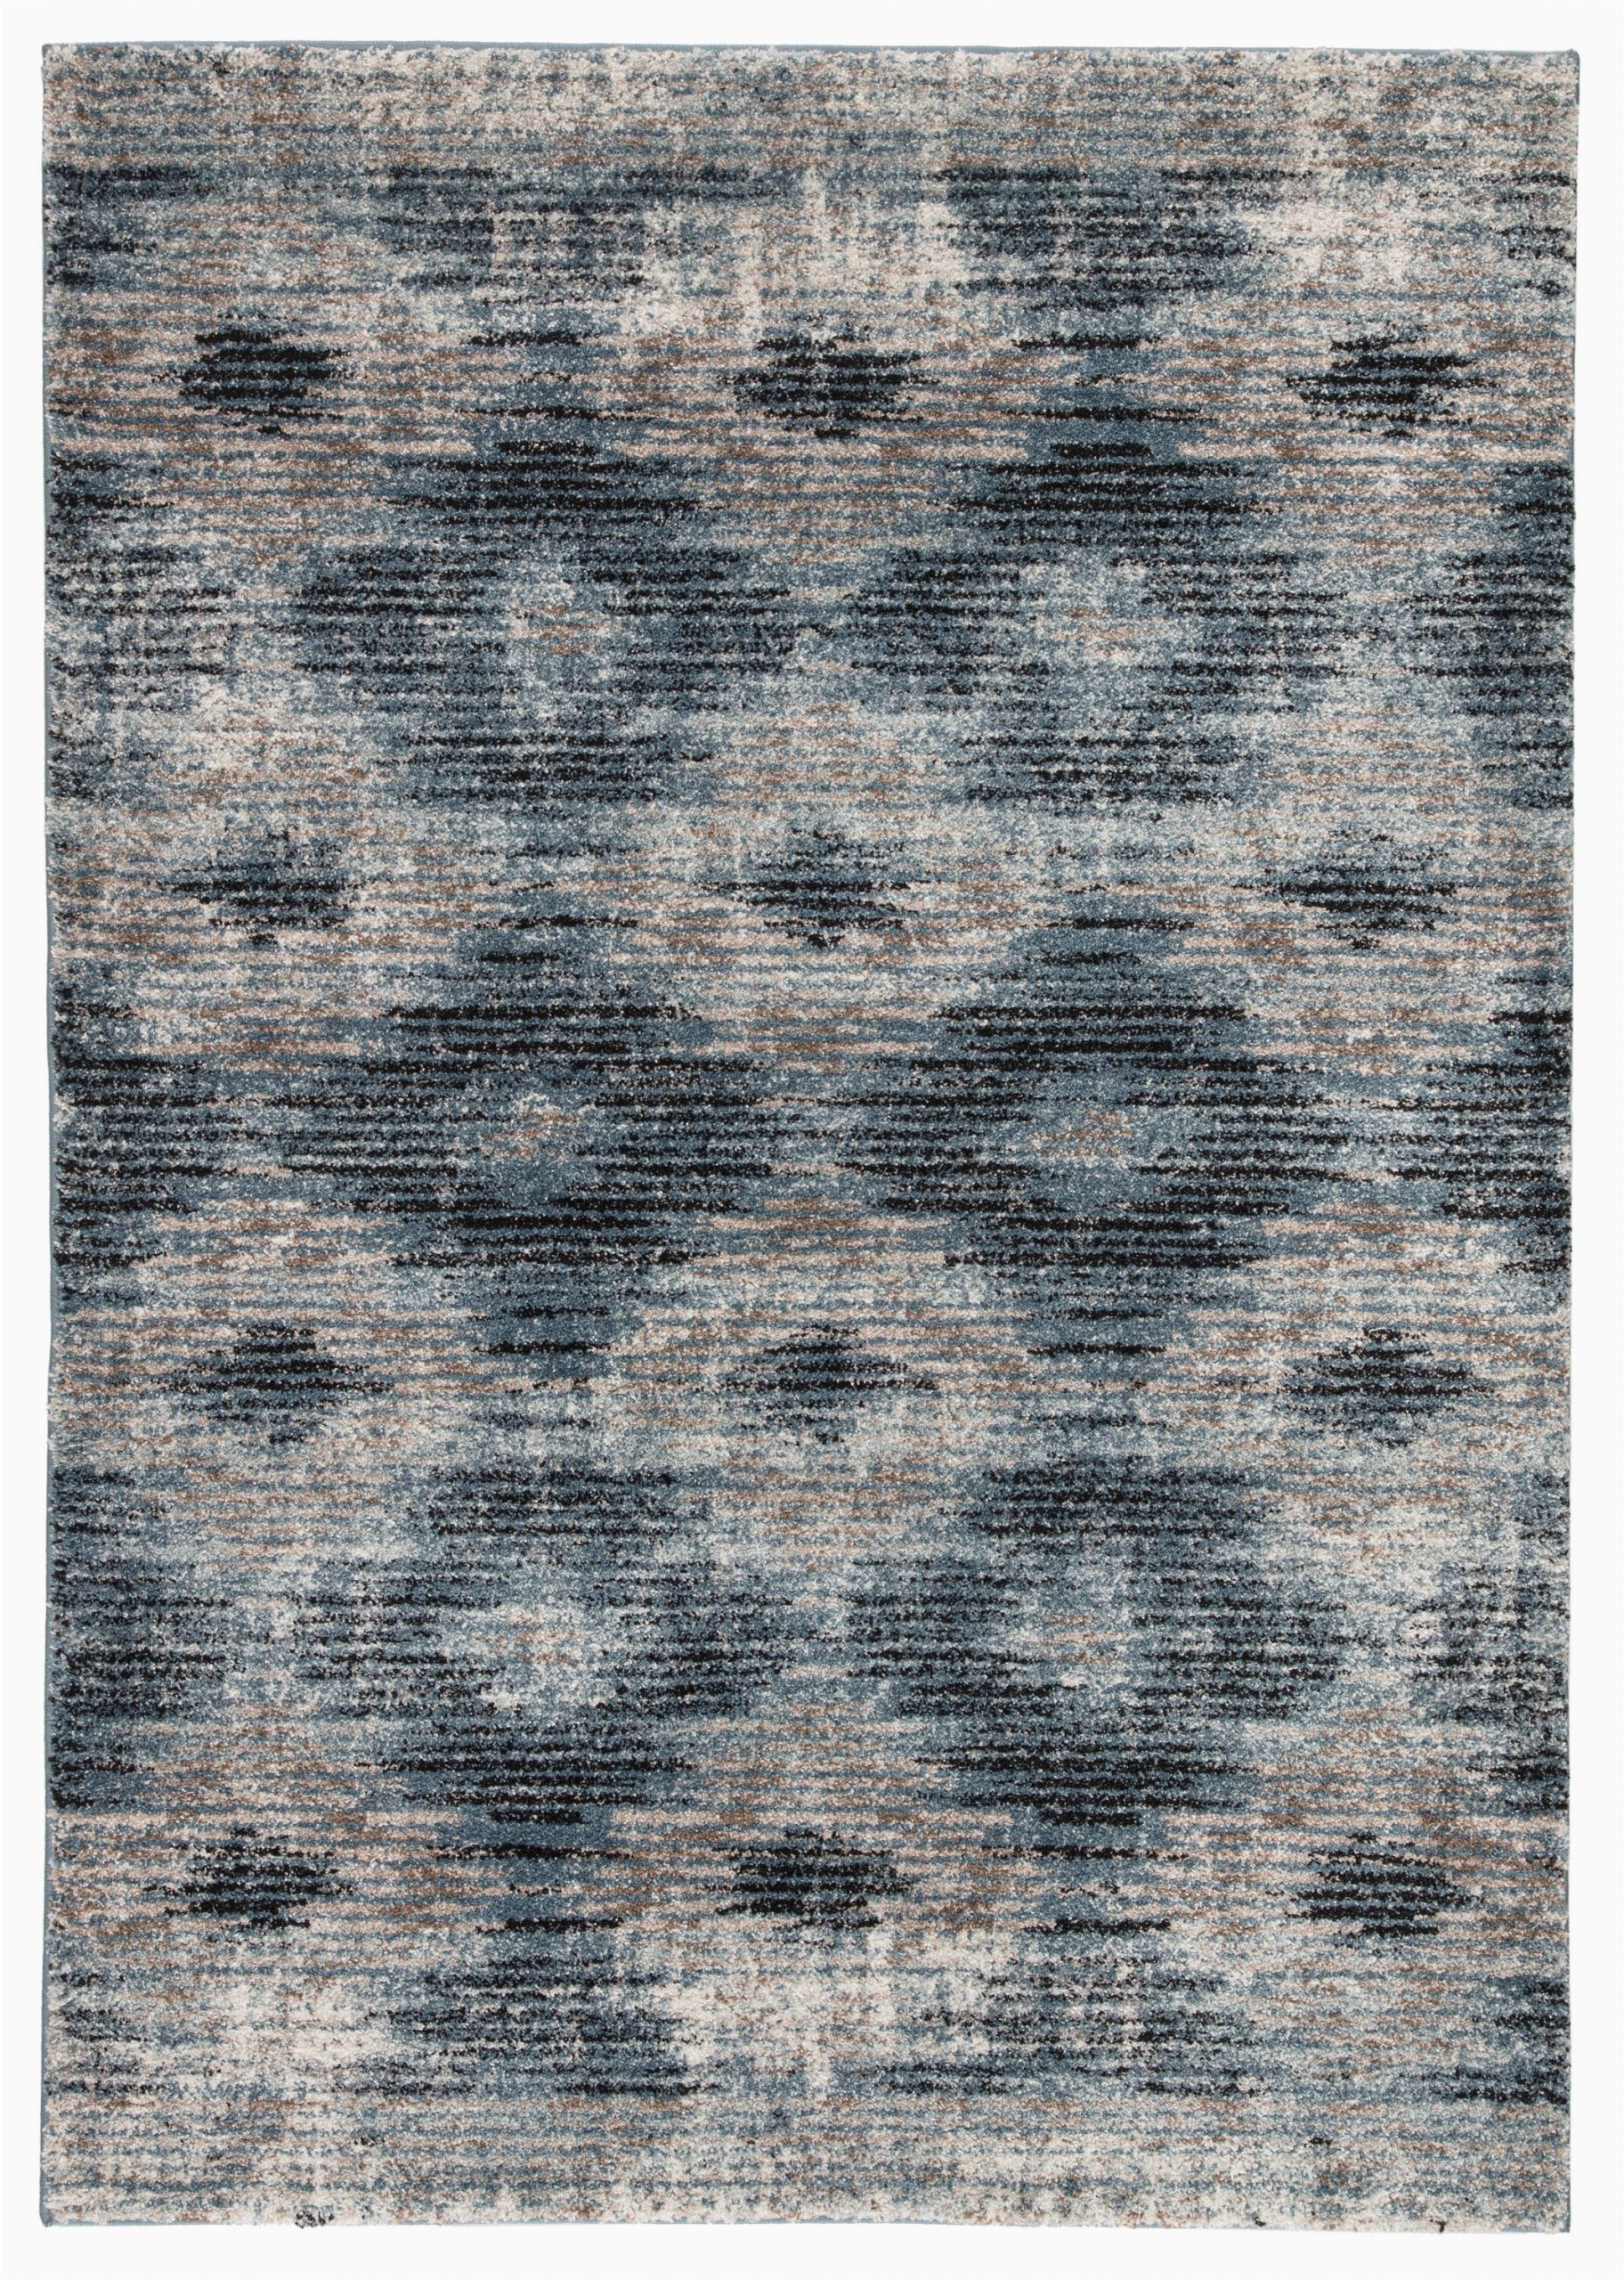 gillenwater geometric bluegray area rug j piid= &experiencetype=1